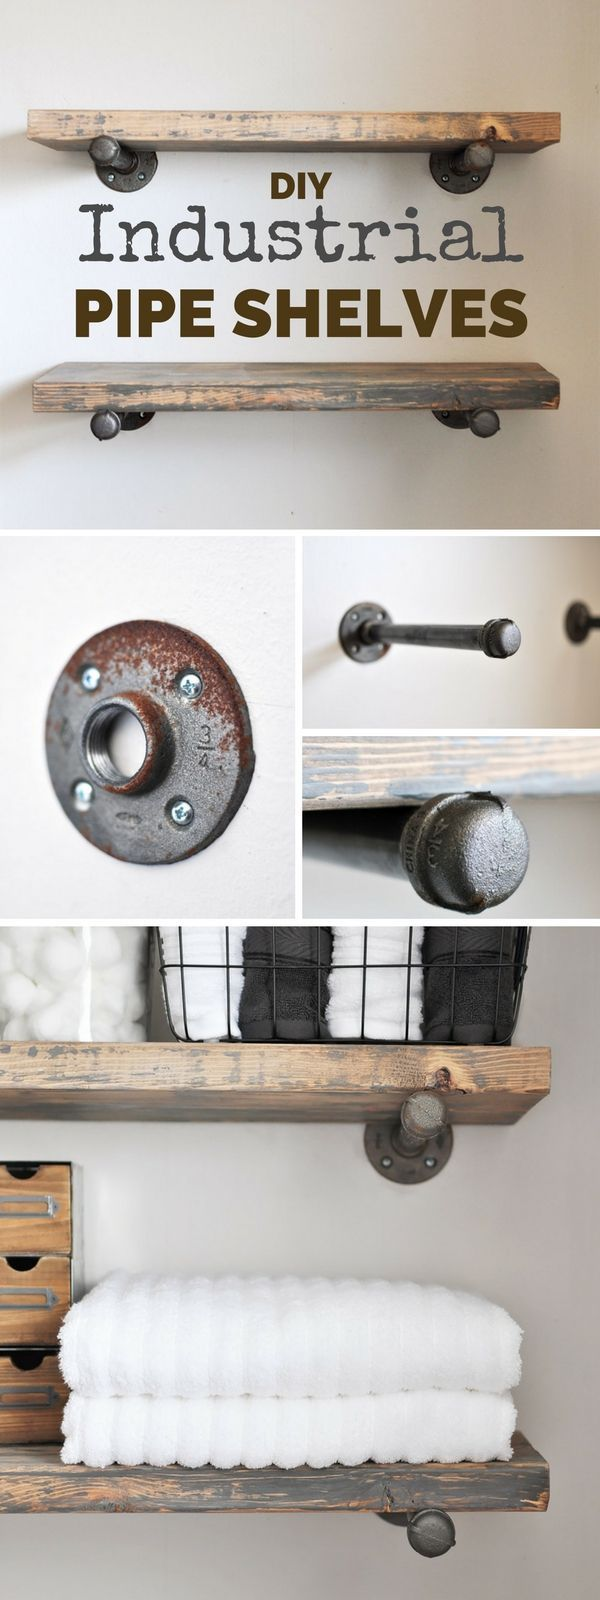 Best 25+ Industrial pipe shelves ideas on Pinterest | Pipe shelves ...